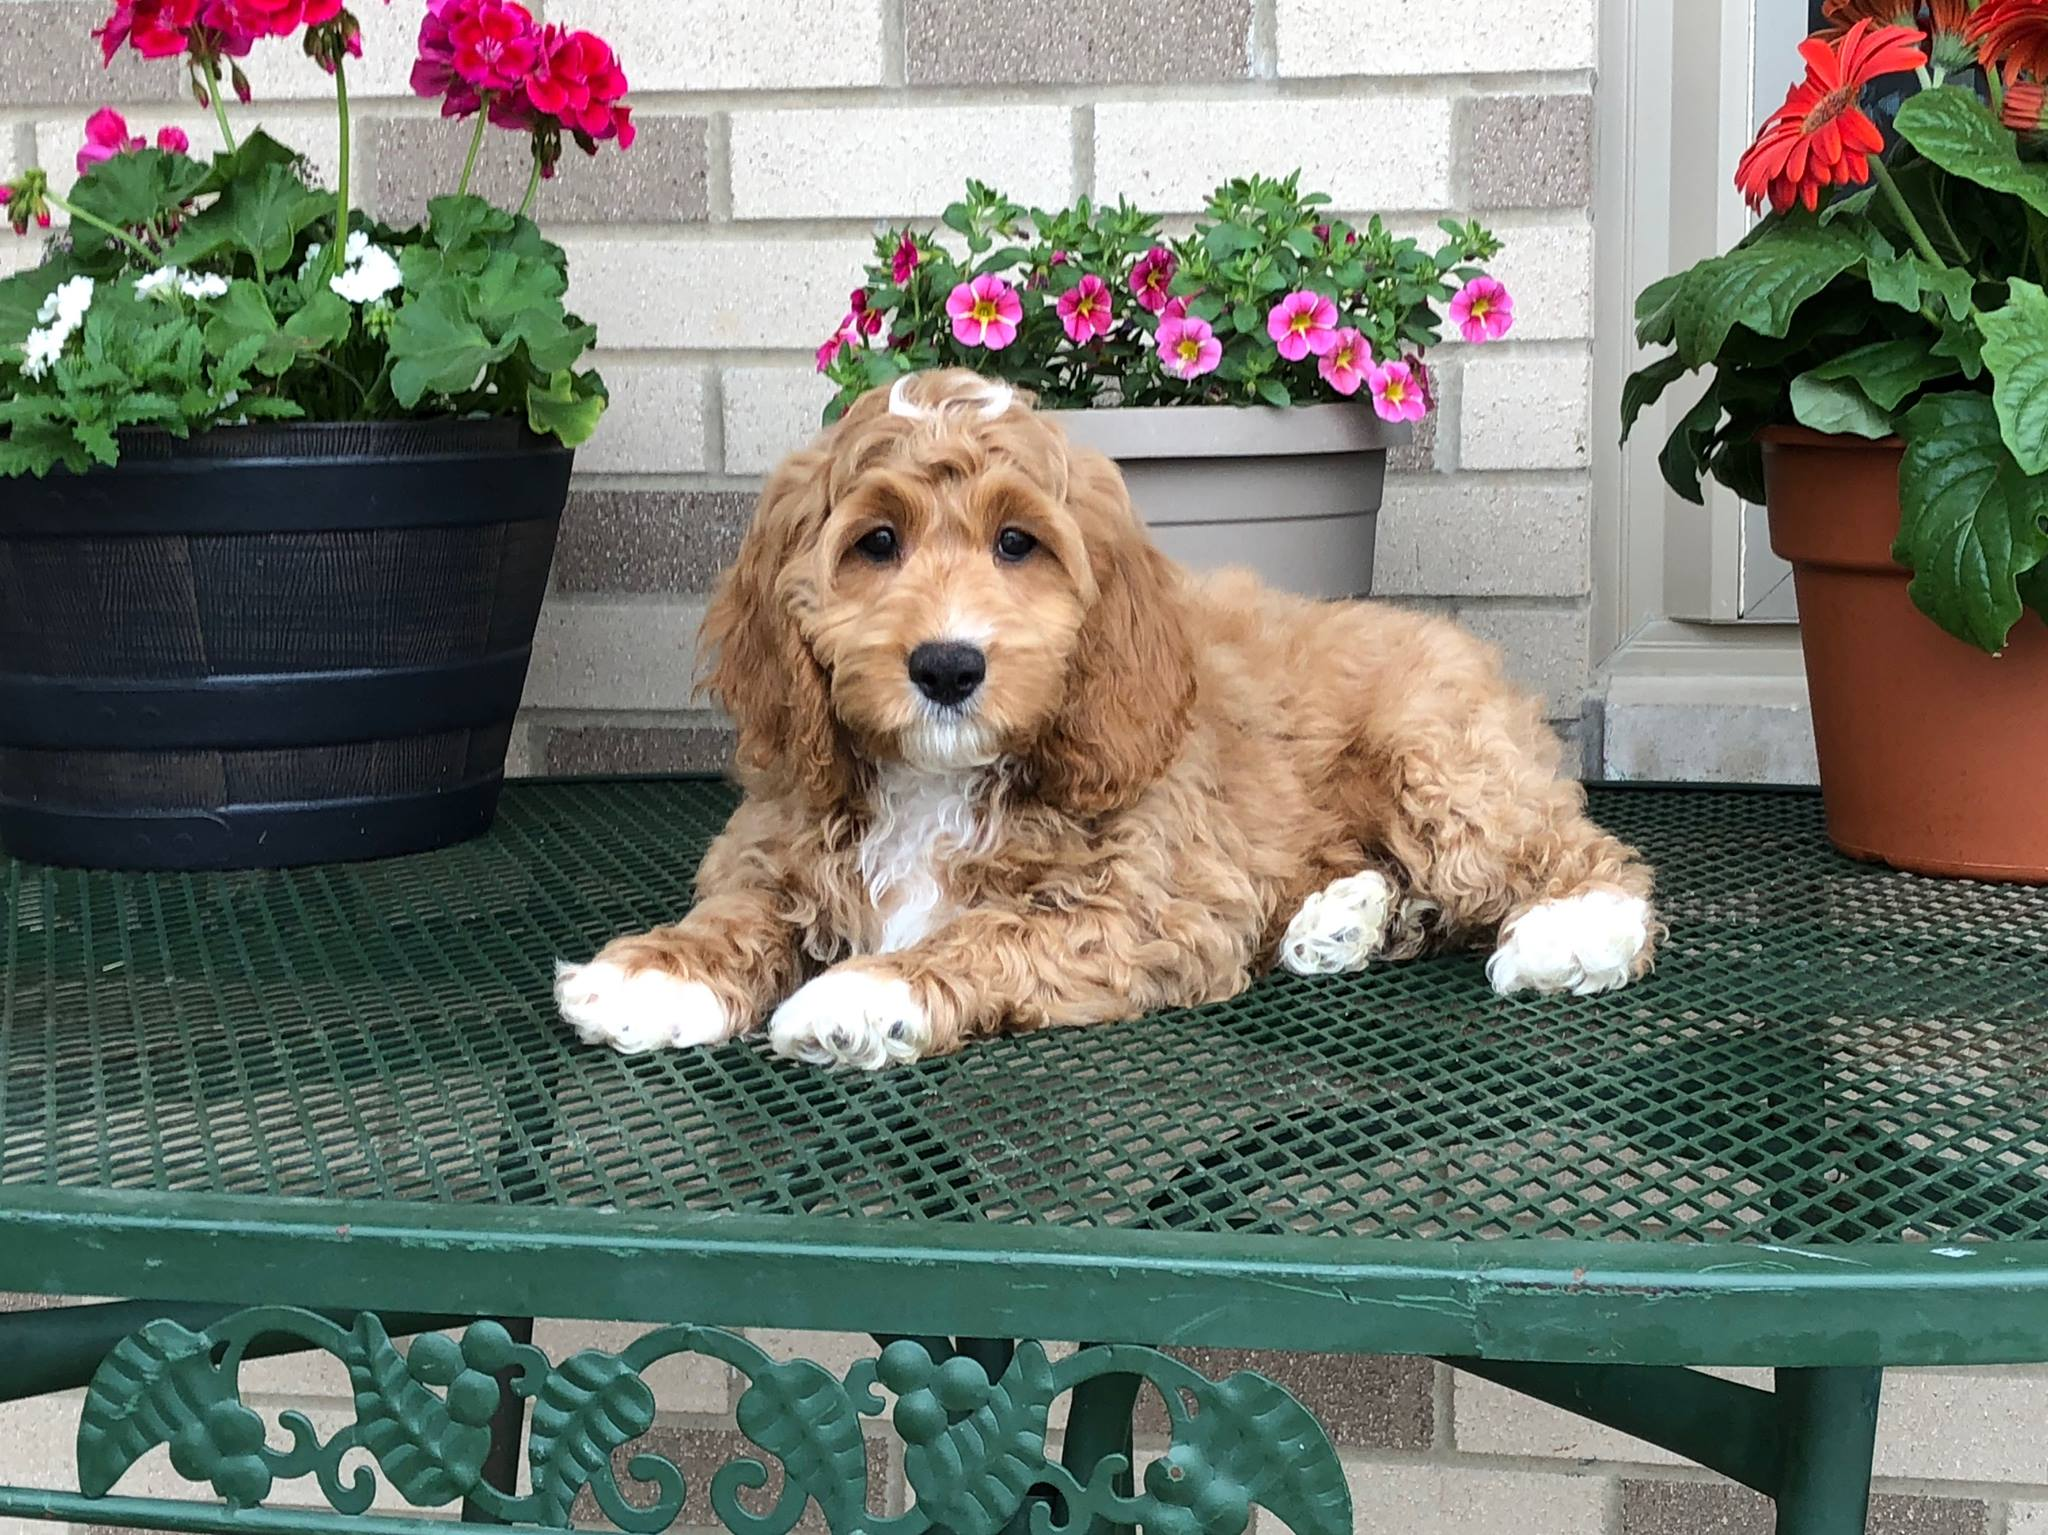 Seeking for dogs and puppies for sale in Indiana